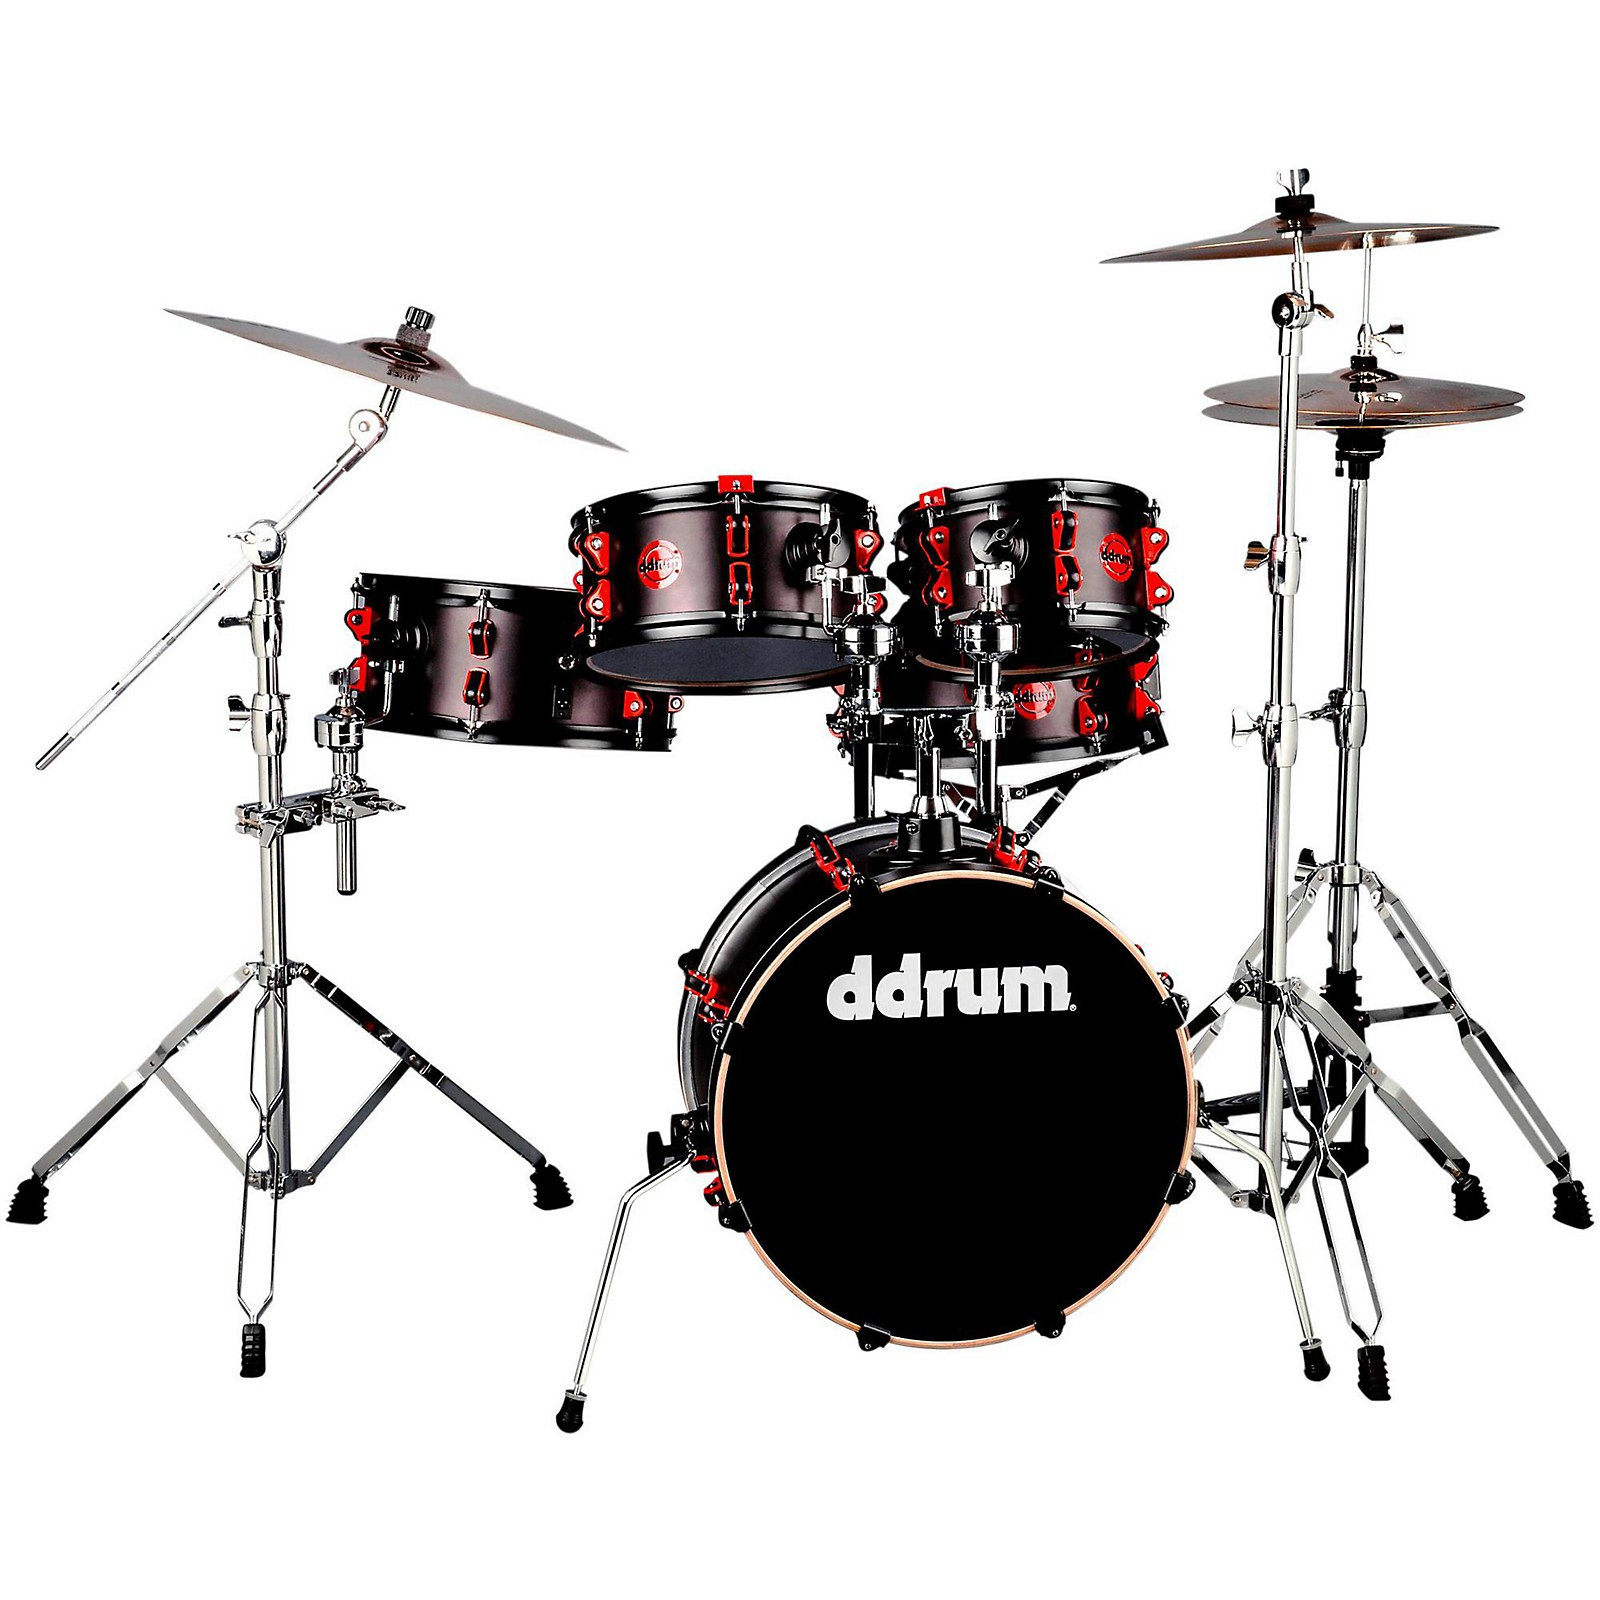 ddrum Hybrid Compact Shell Pack